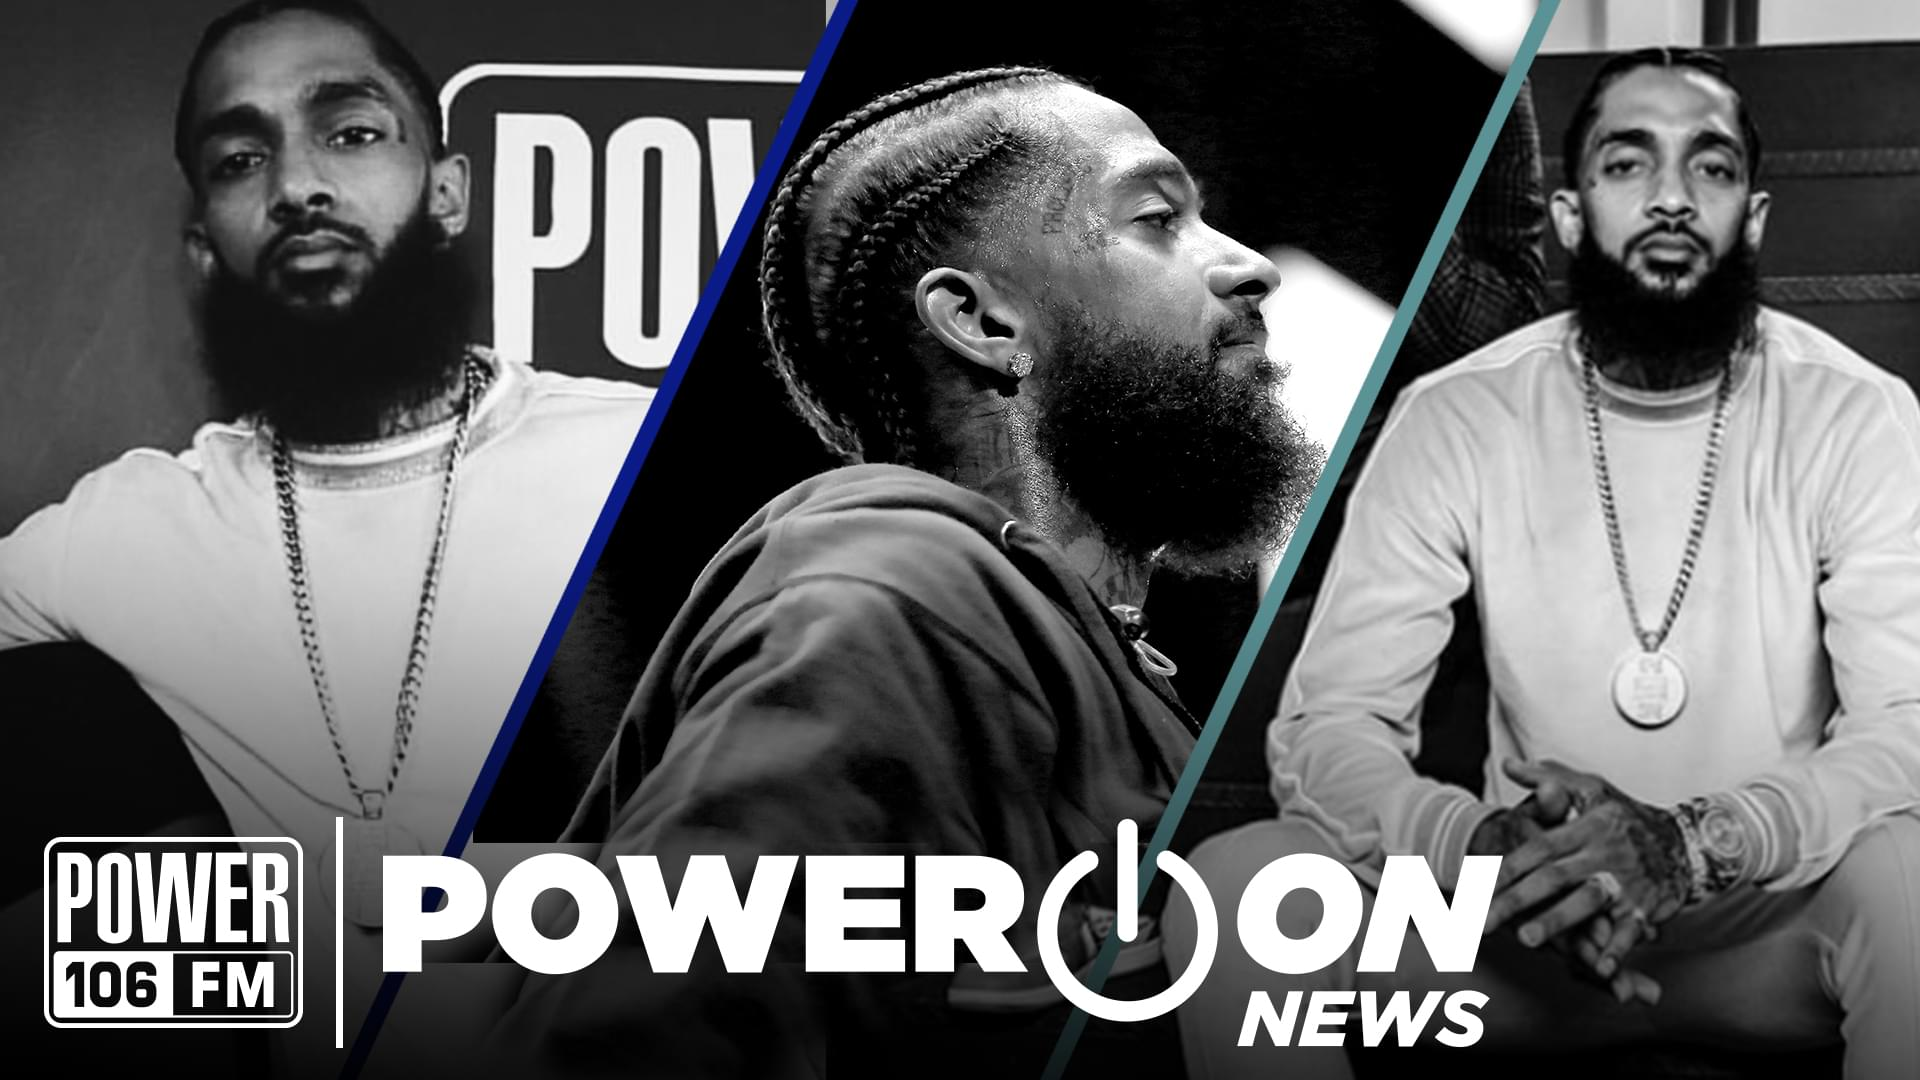 #PowerOn: Nipsey Hussle's Memorial Service Brings Thousands Together in LA + The Marathon Continues